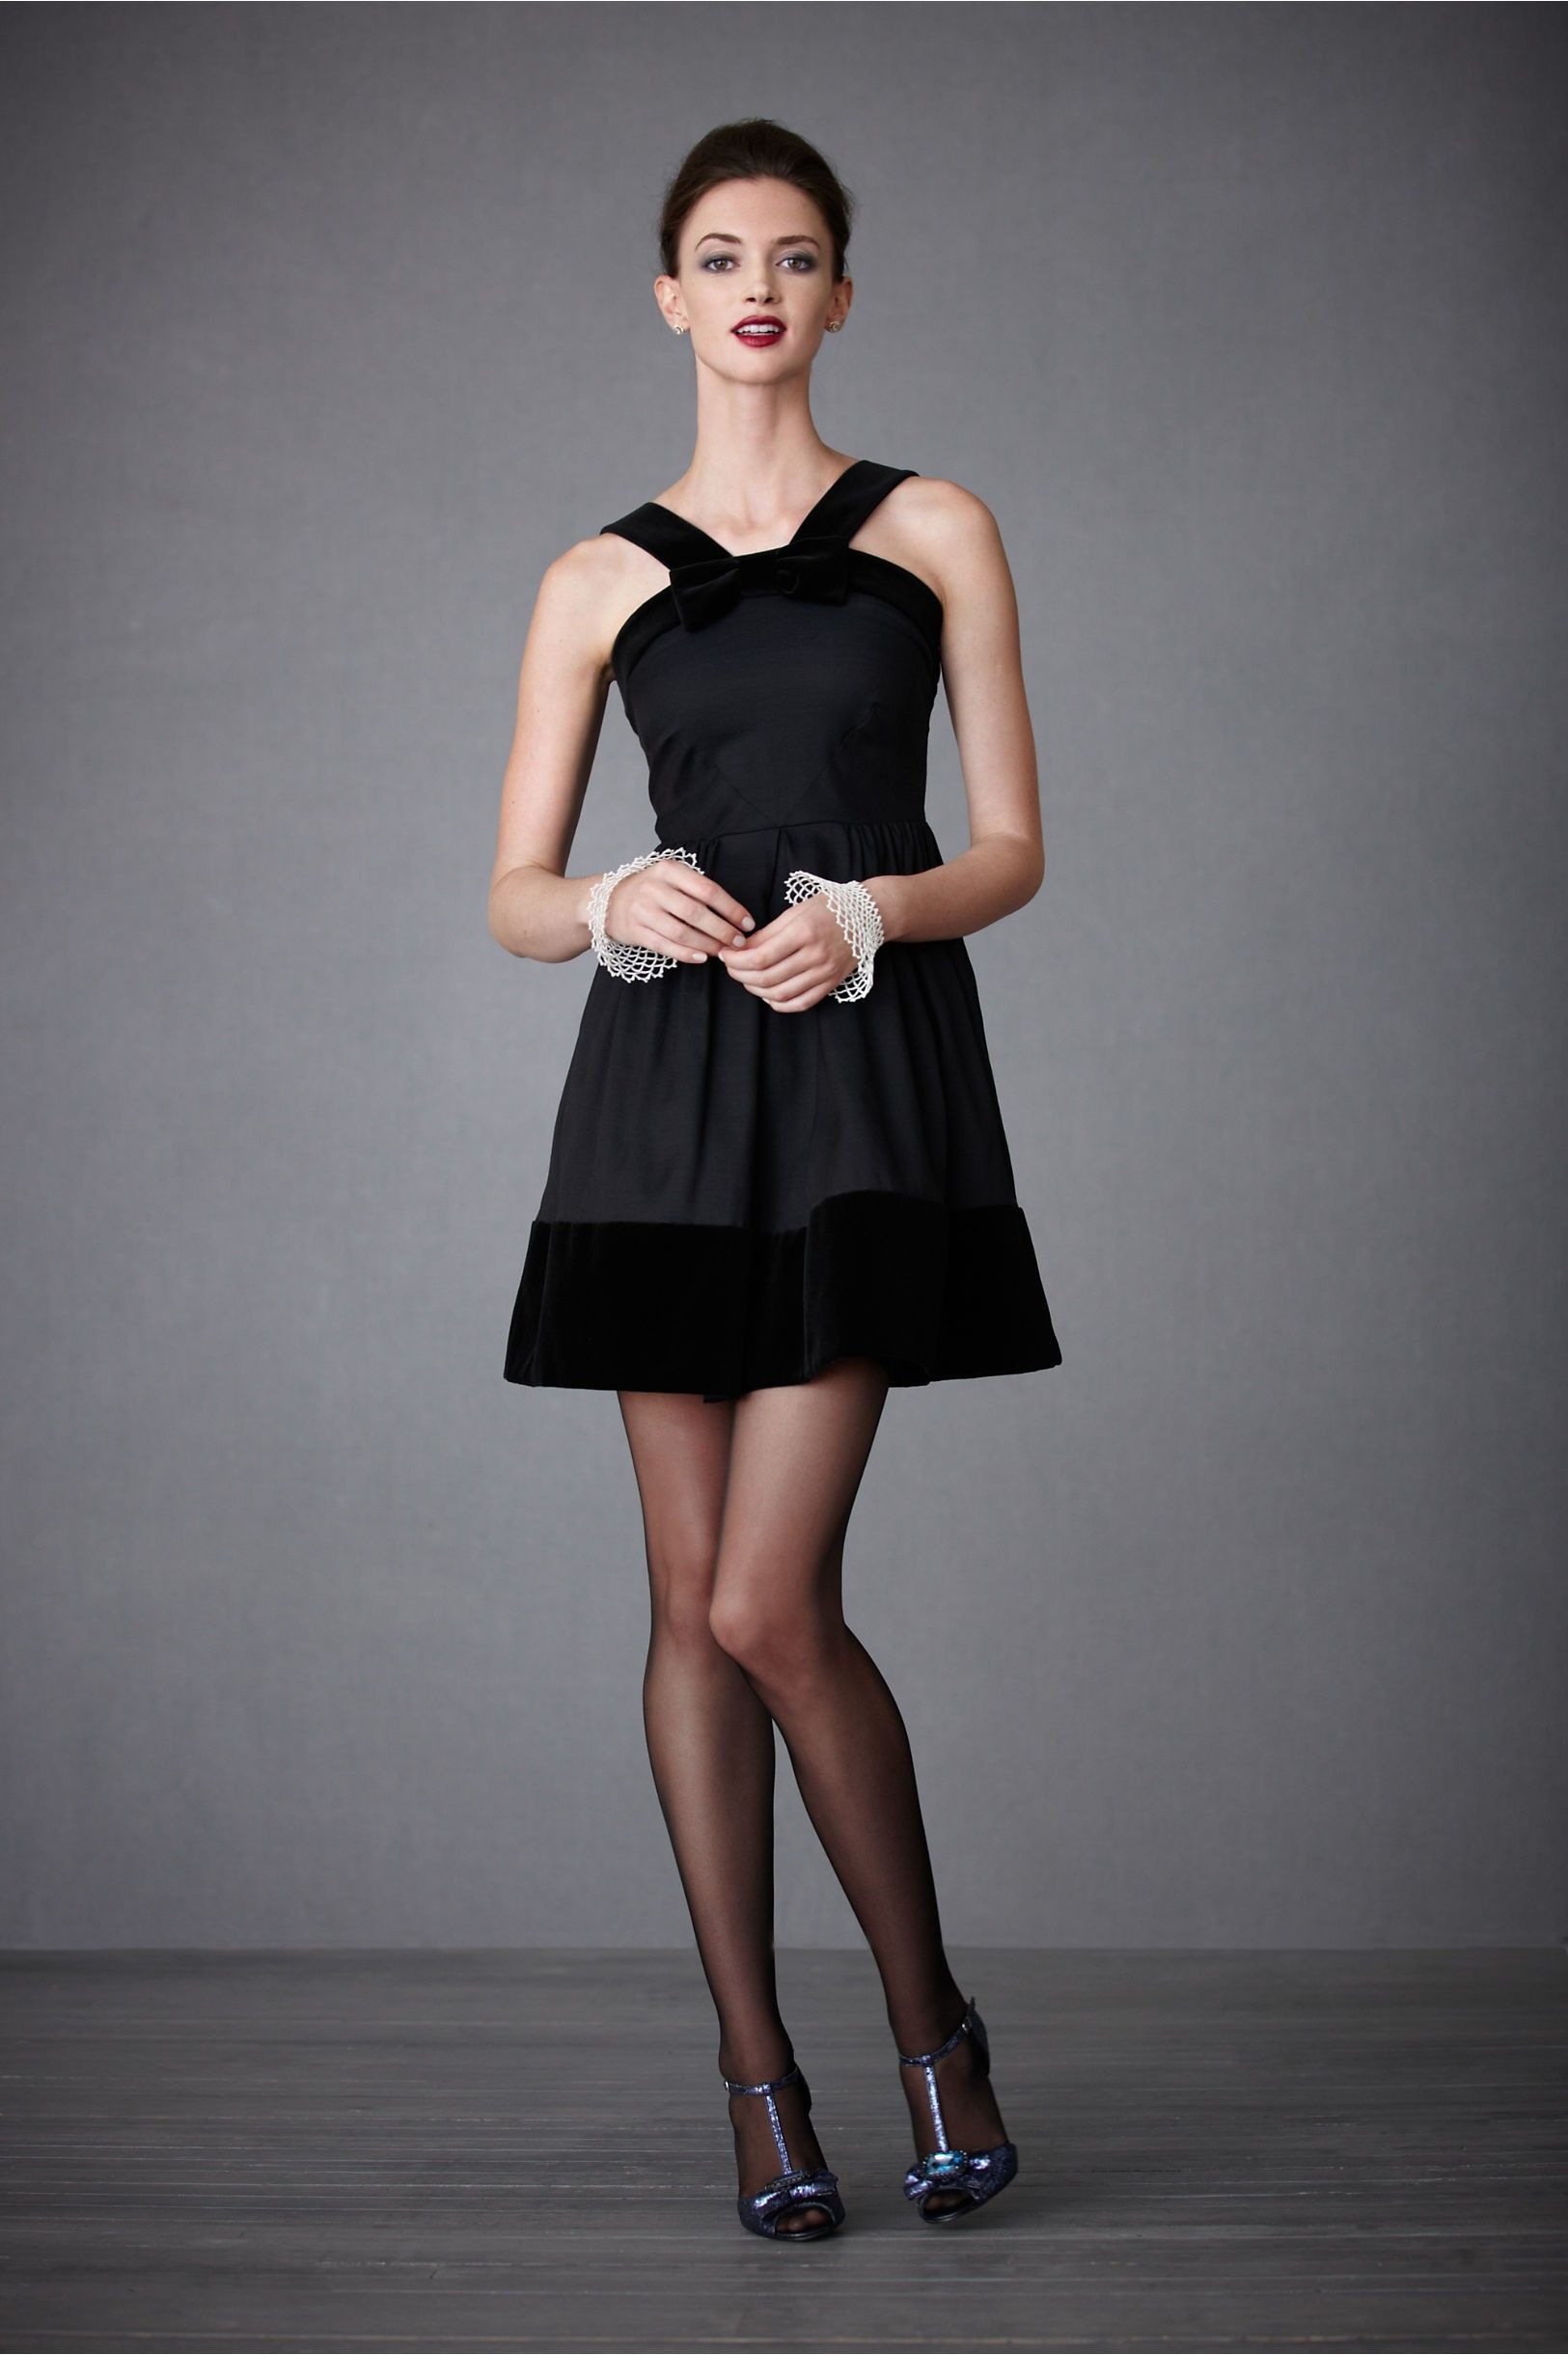 Silk Side Zip Short Special Occasions Dress Black Tie Dress Black Short Dress Black Dress